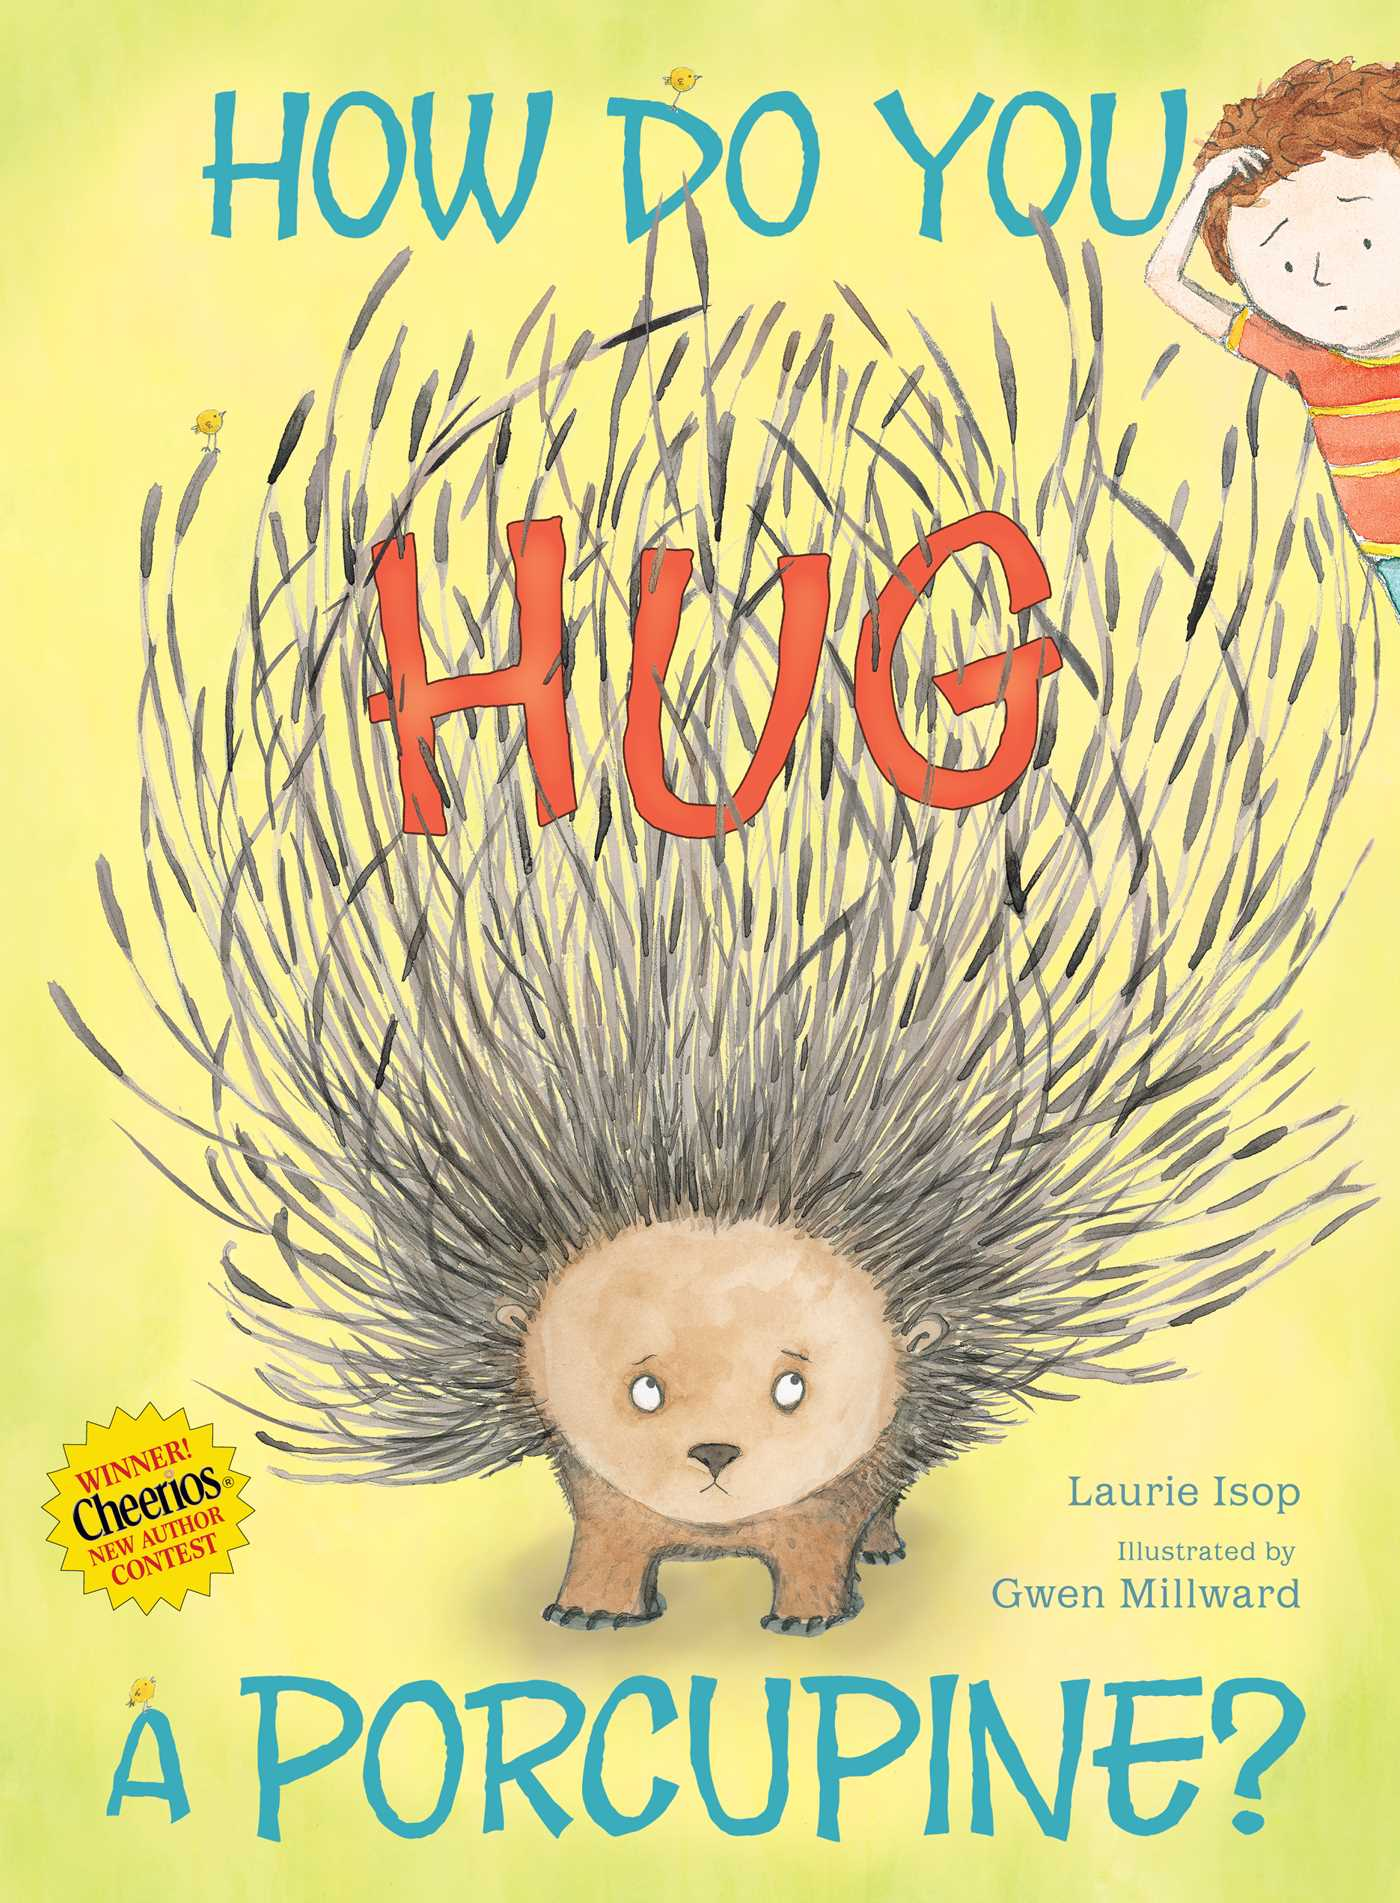 How do you hug a porcupine 9781442435575 hr